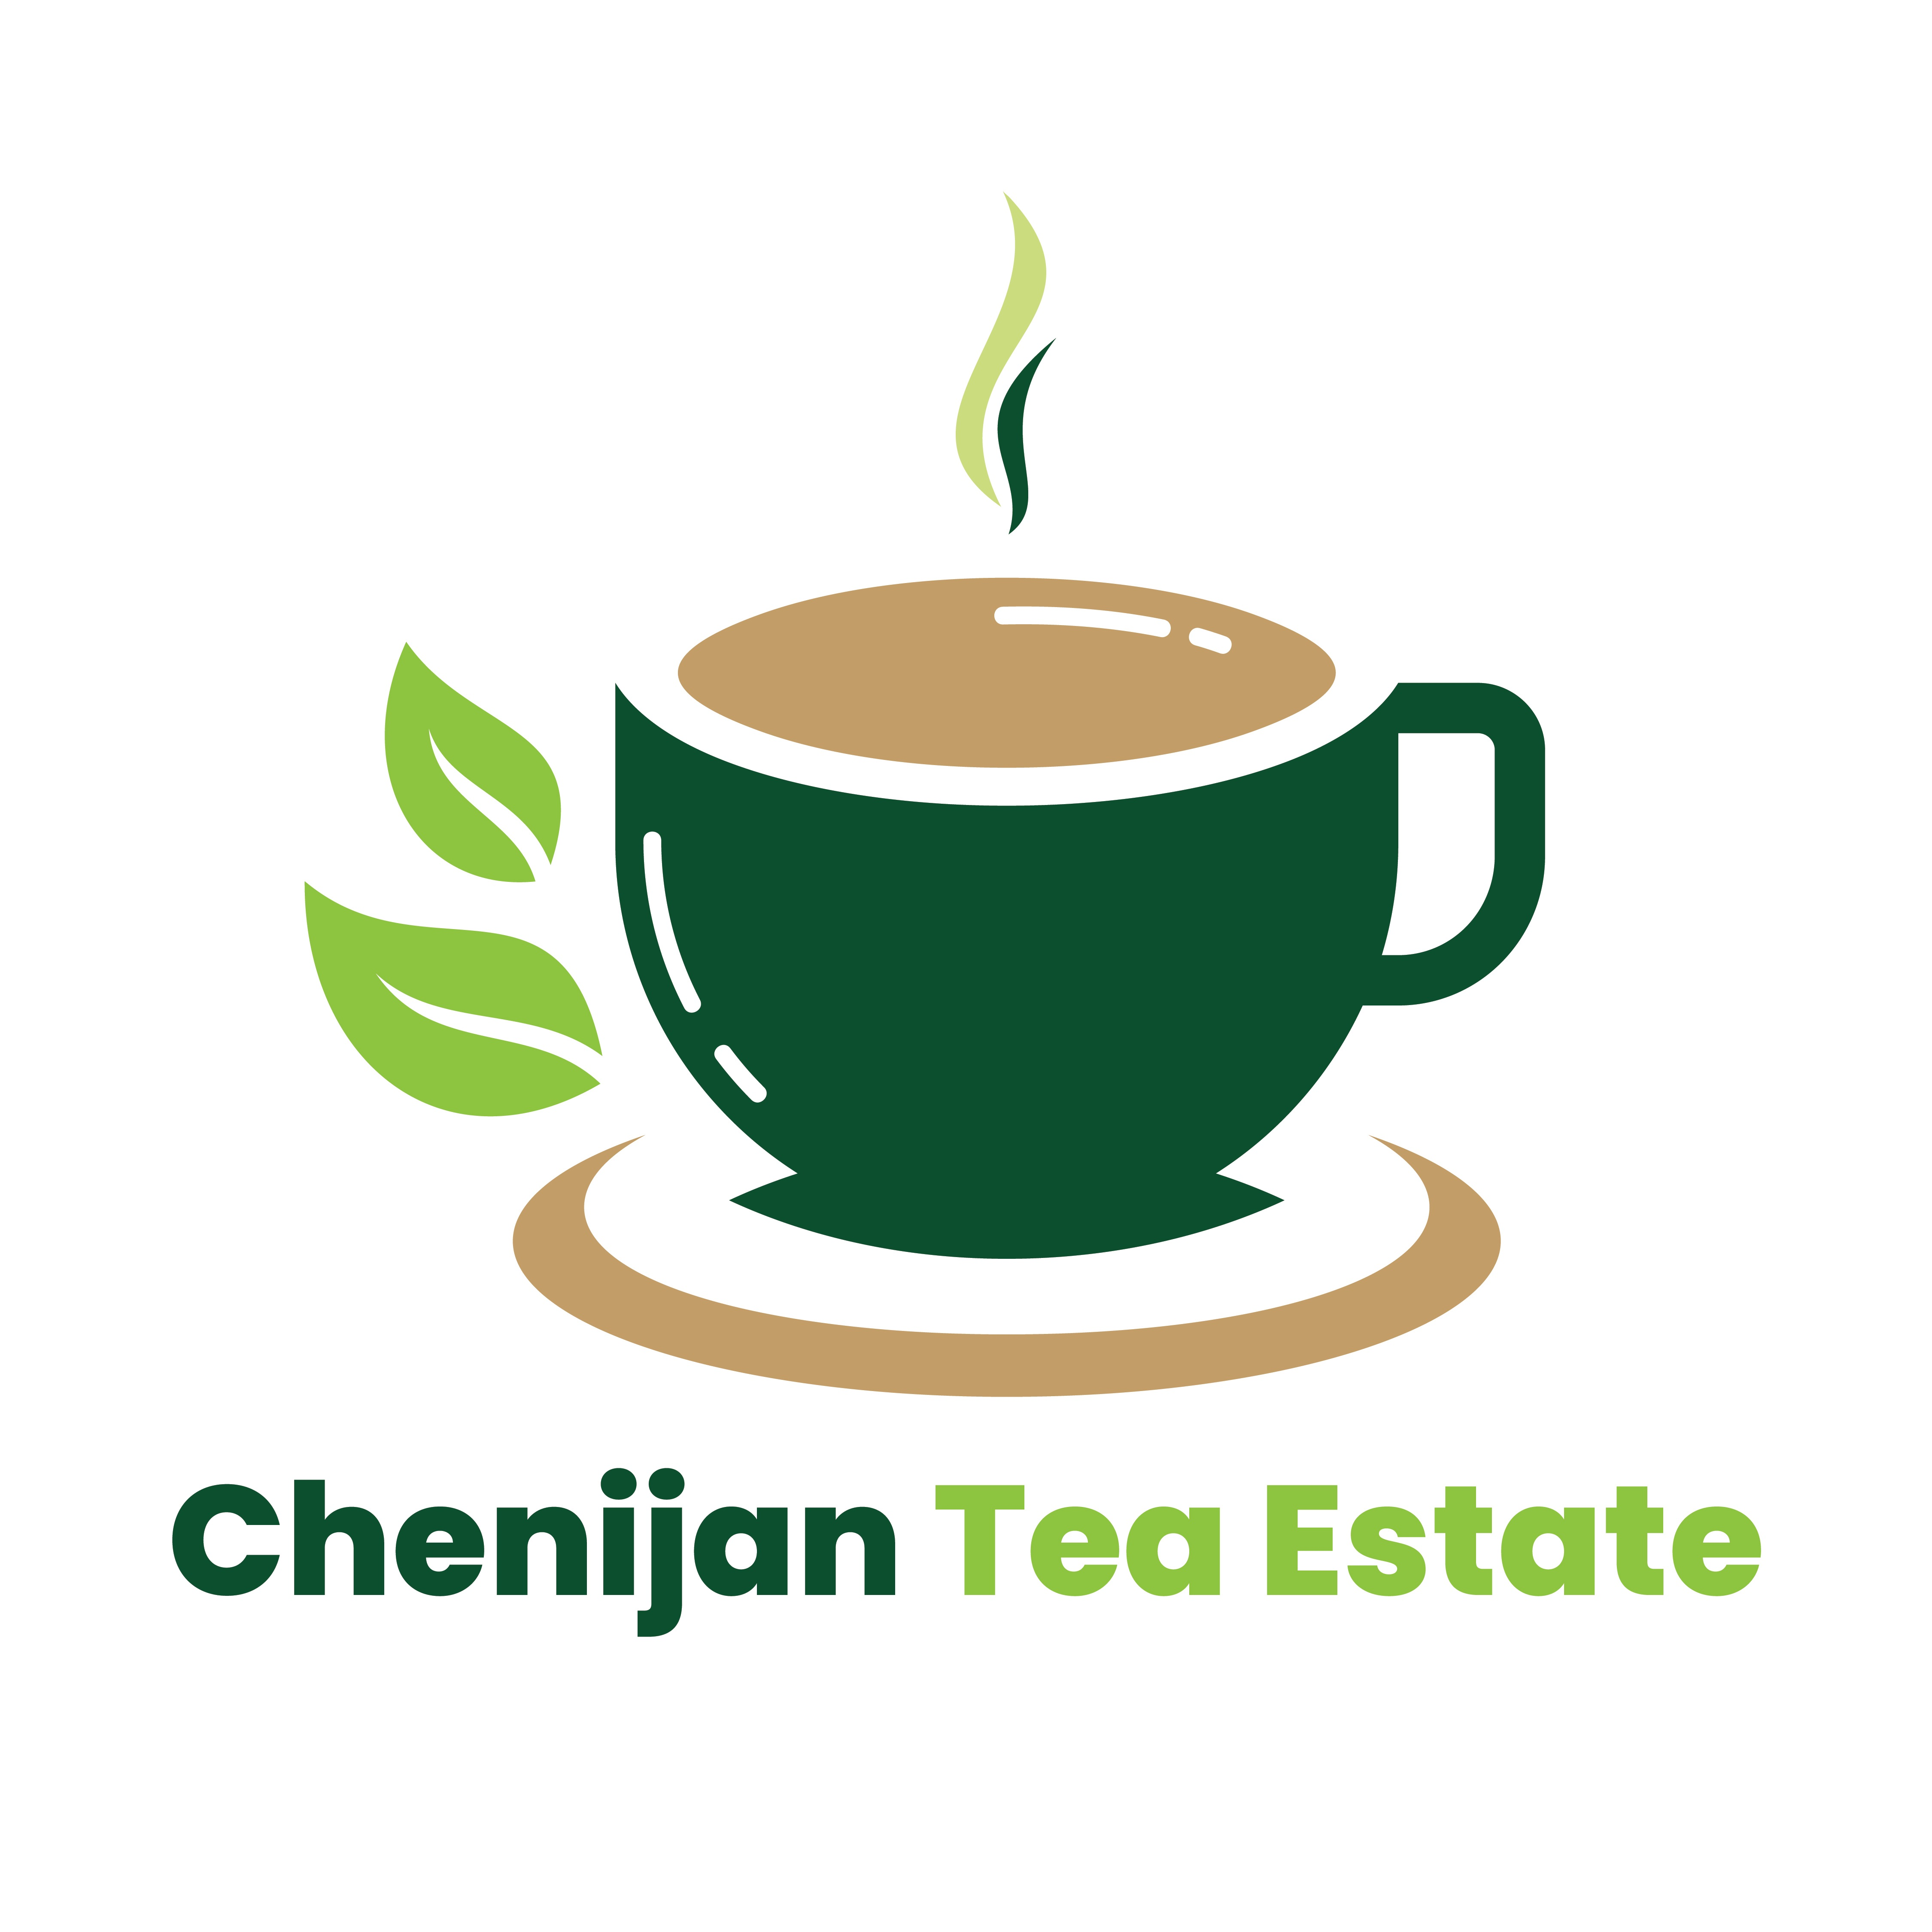 Chenijan Tea Estate